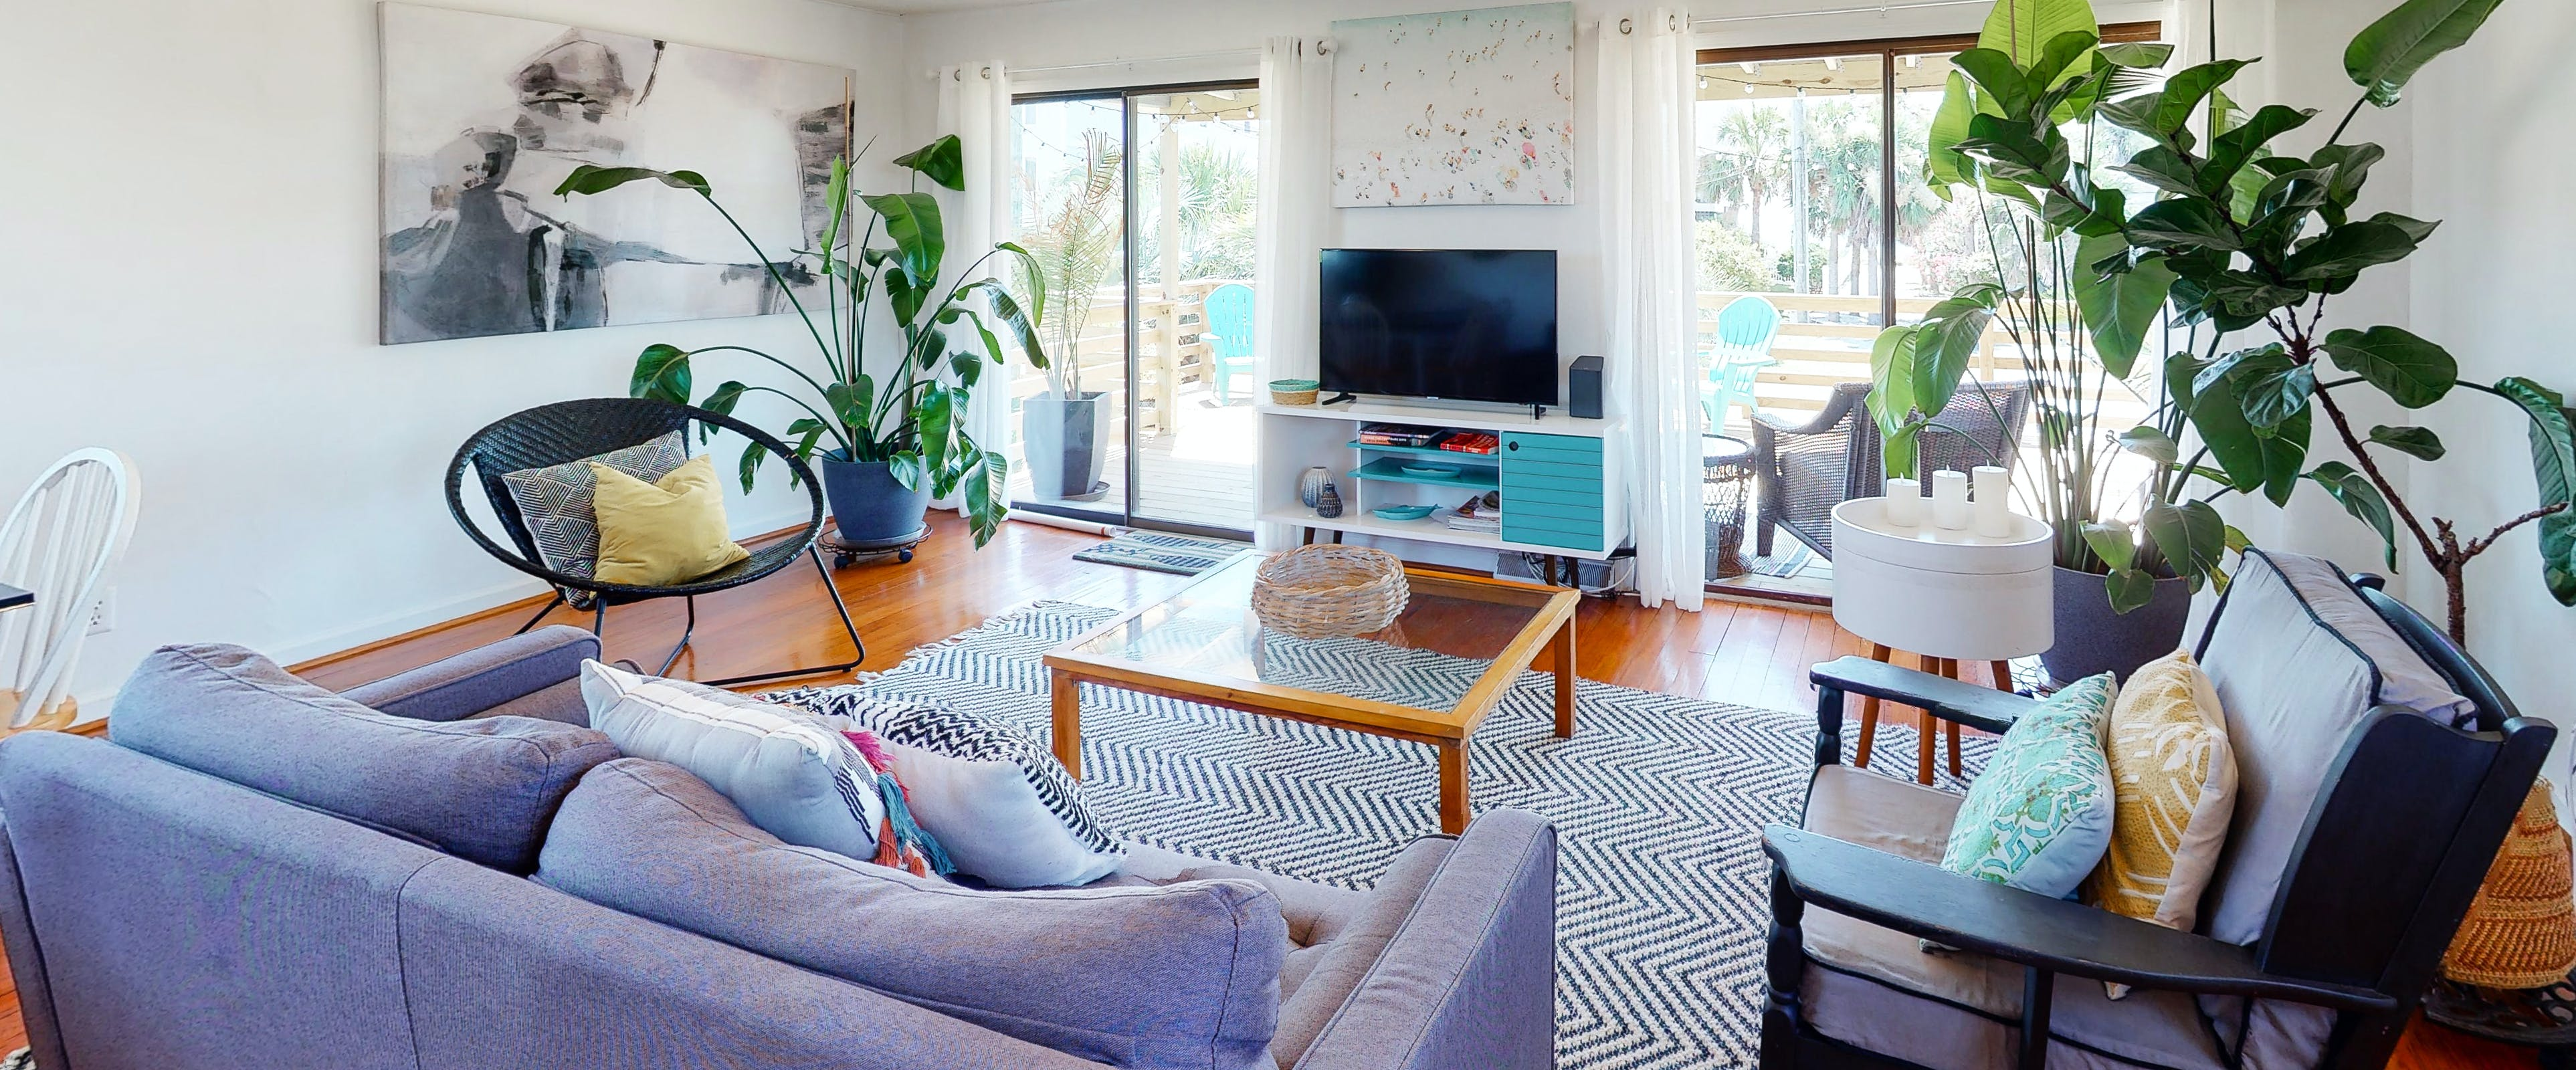 living room of folly beach vacation rental with large live plants